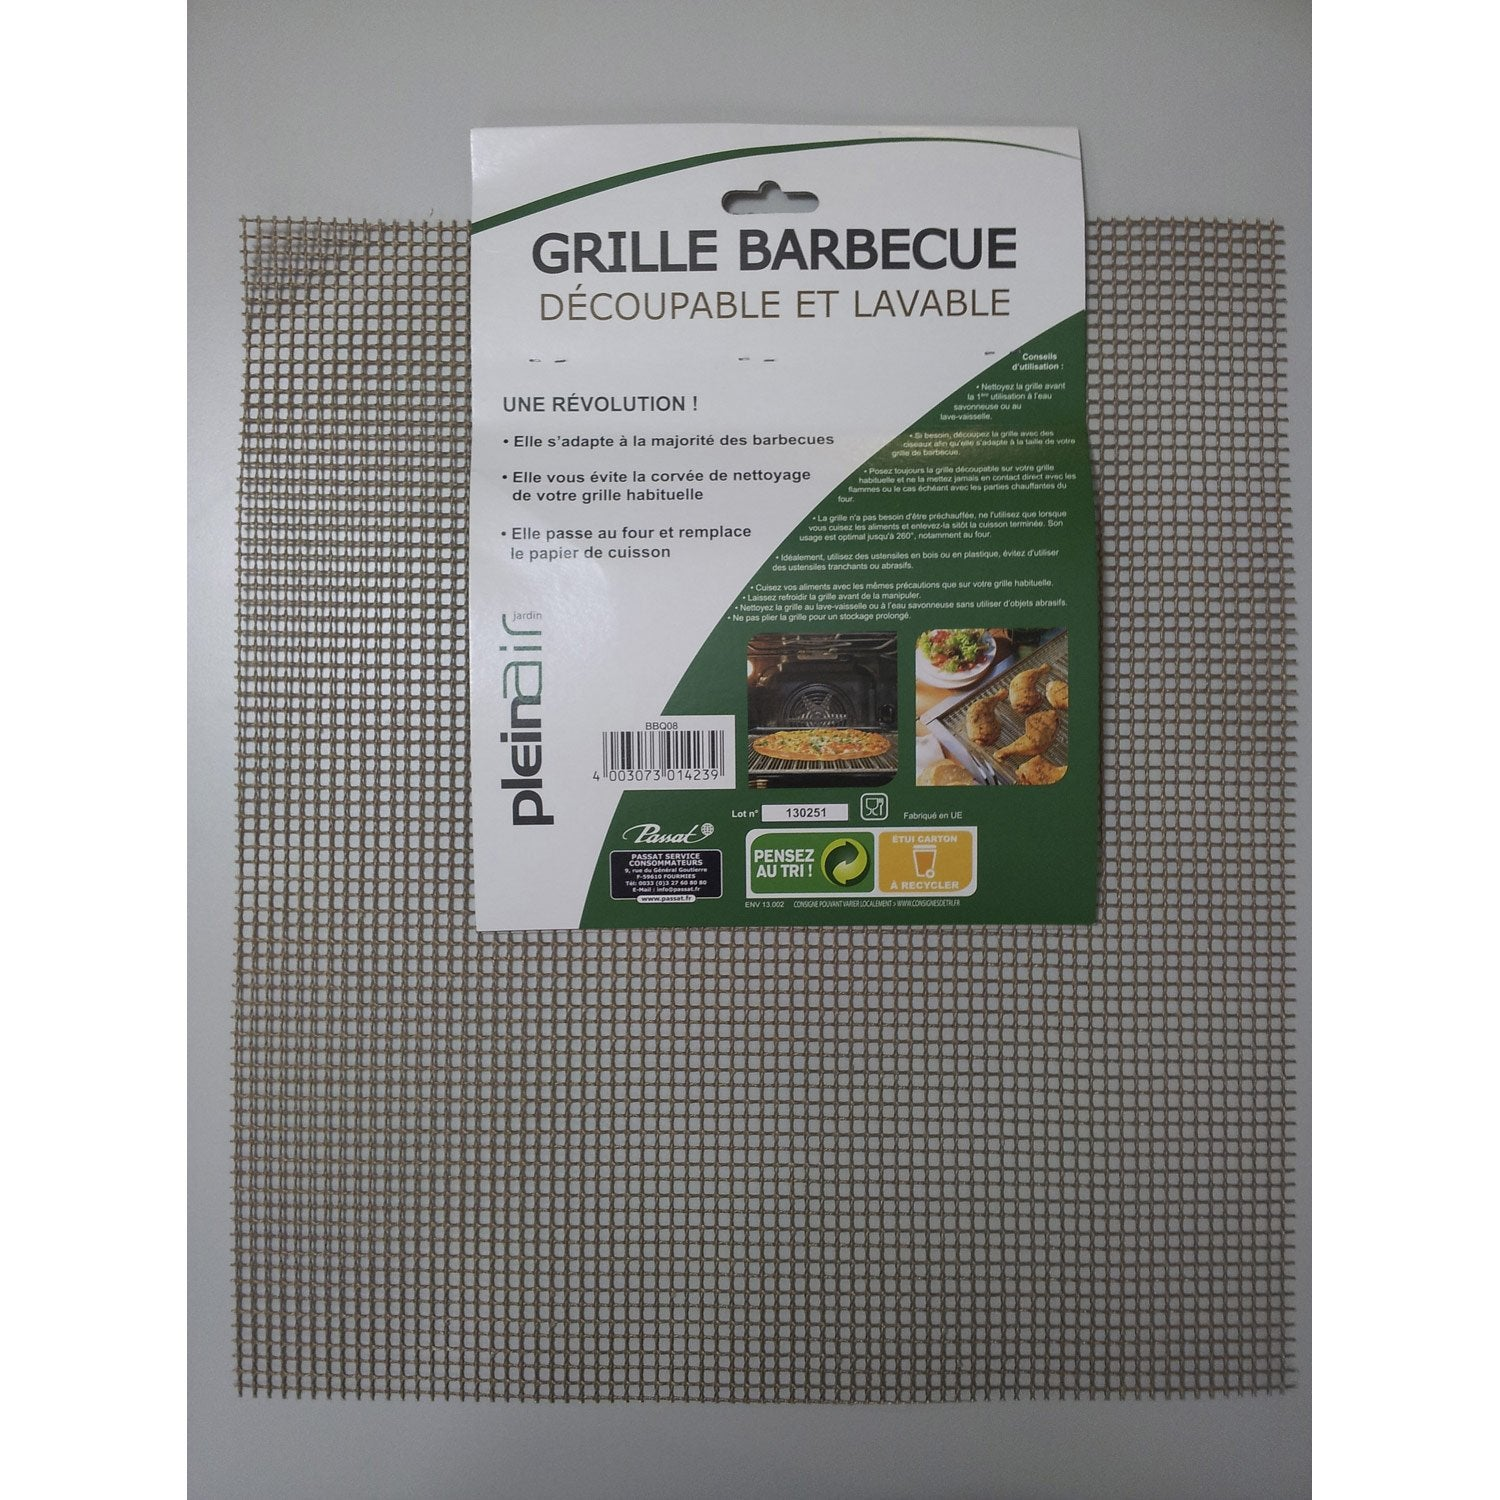 Grille rectangle de barbecue leroy merlin - Barbecue leroy merlin ...